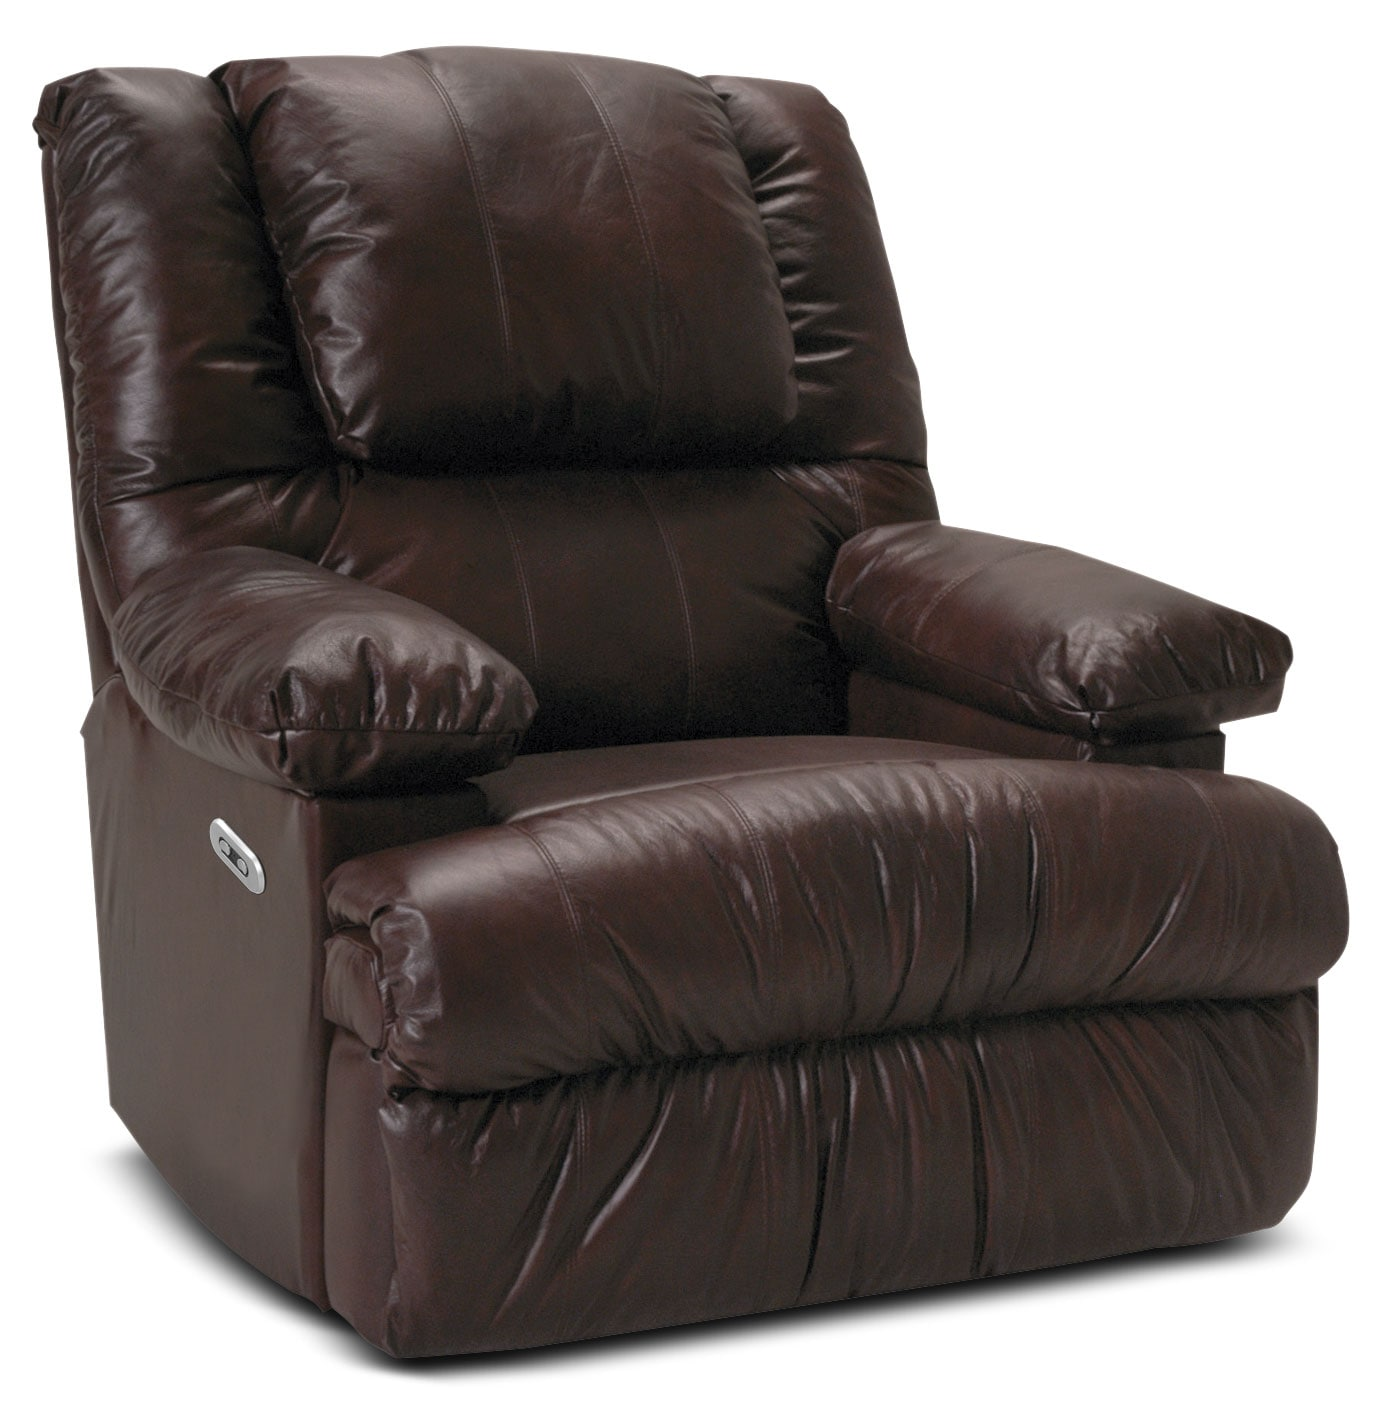 Designed2B 5598 Bonded Leather Power Recliner with Massage and Storage - Java